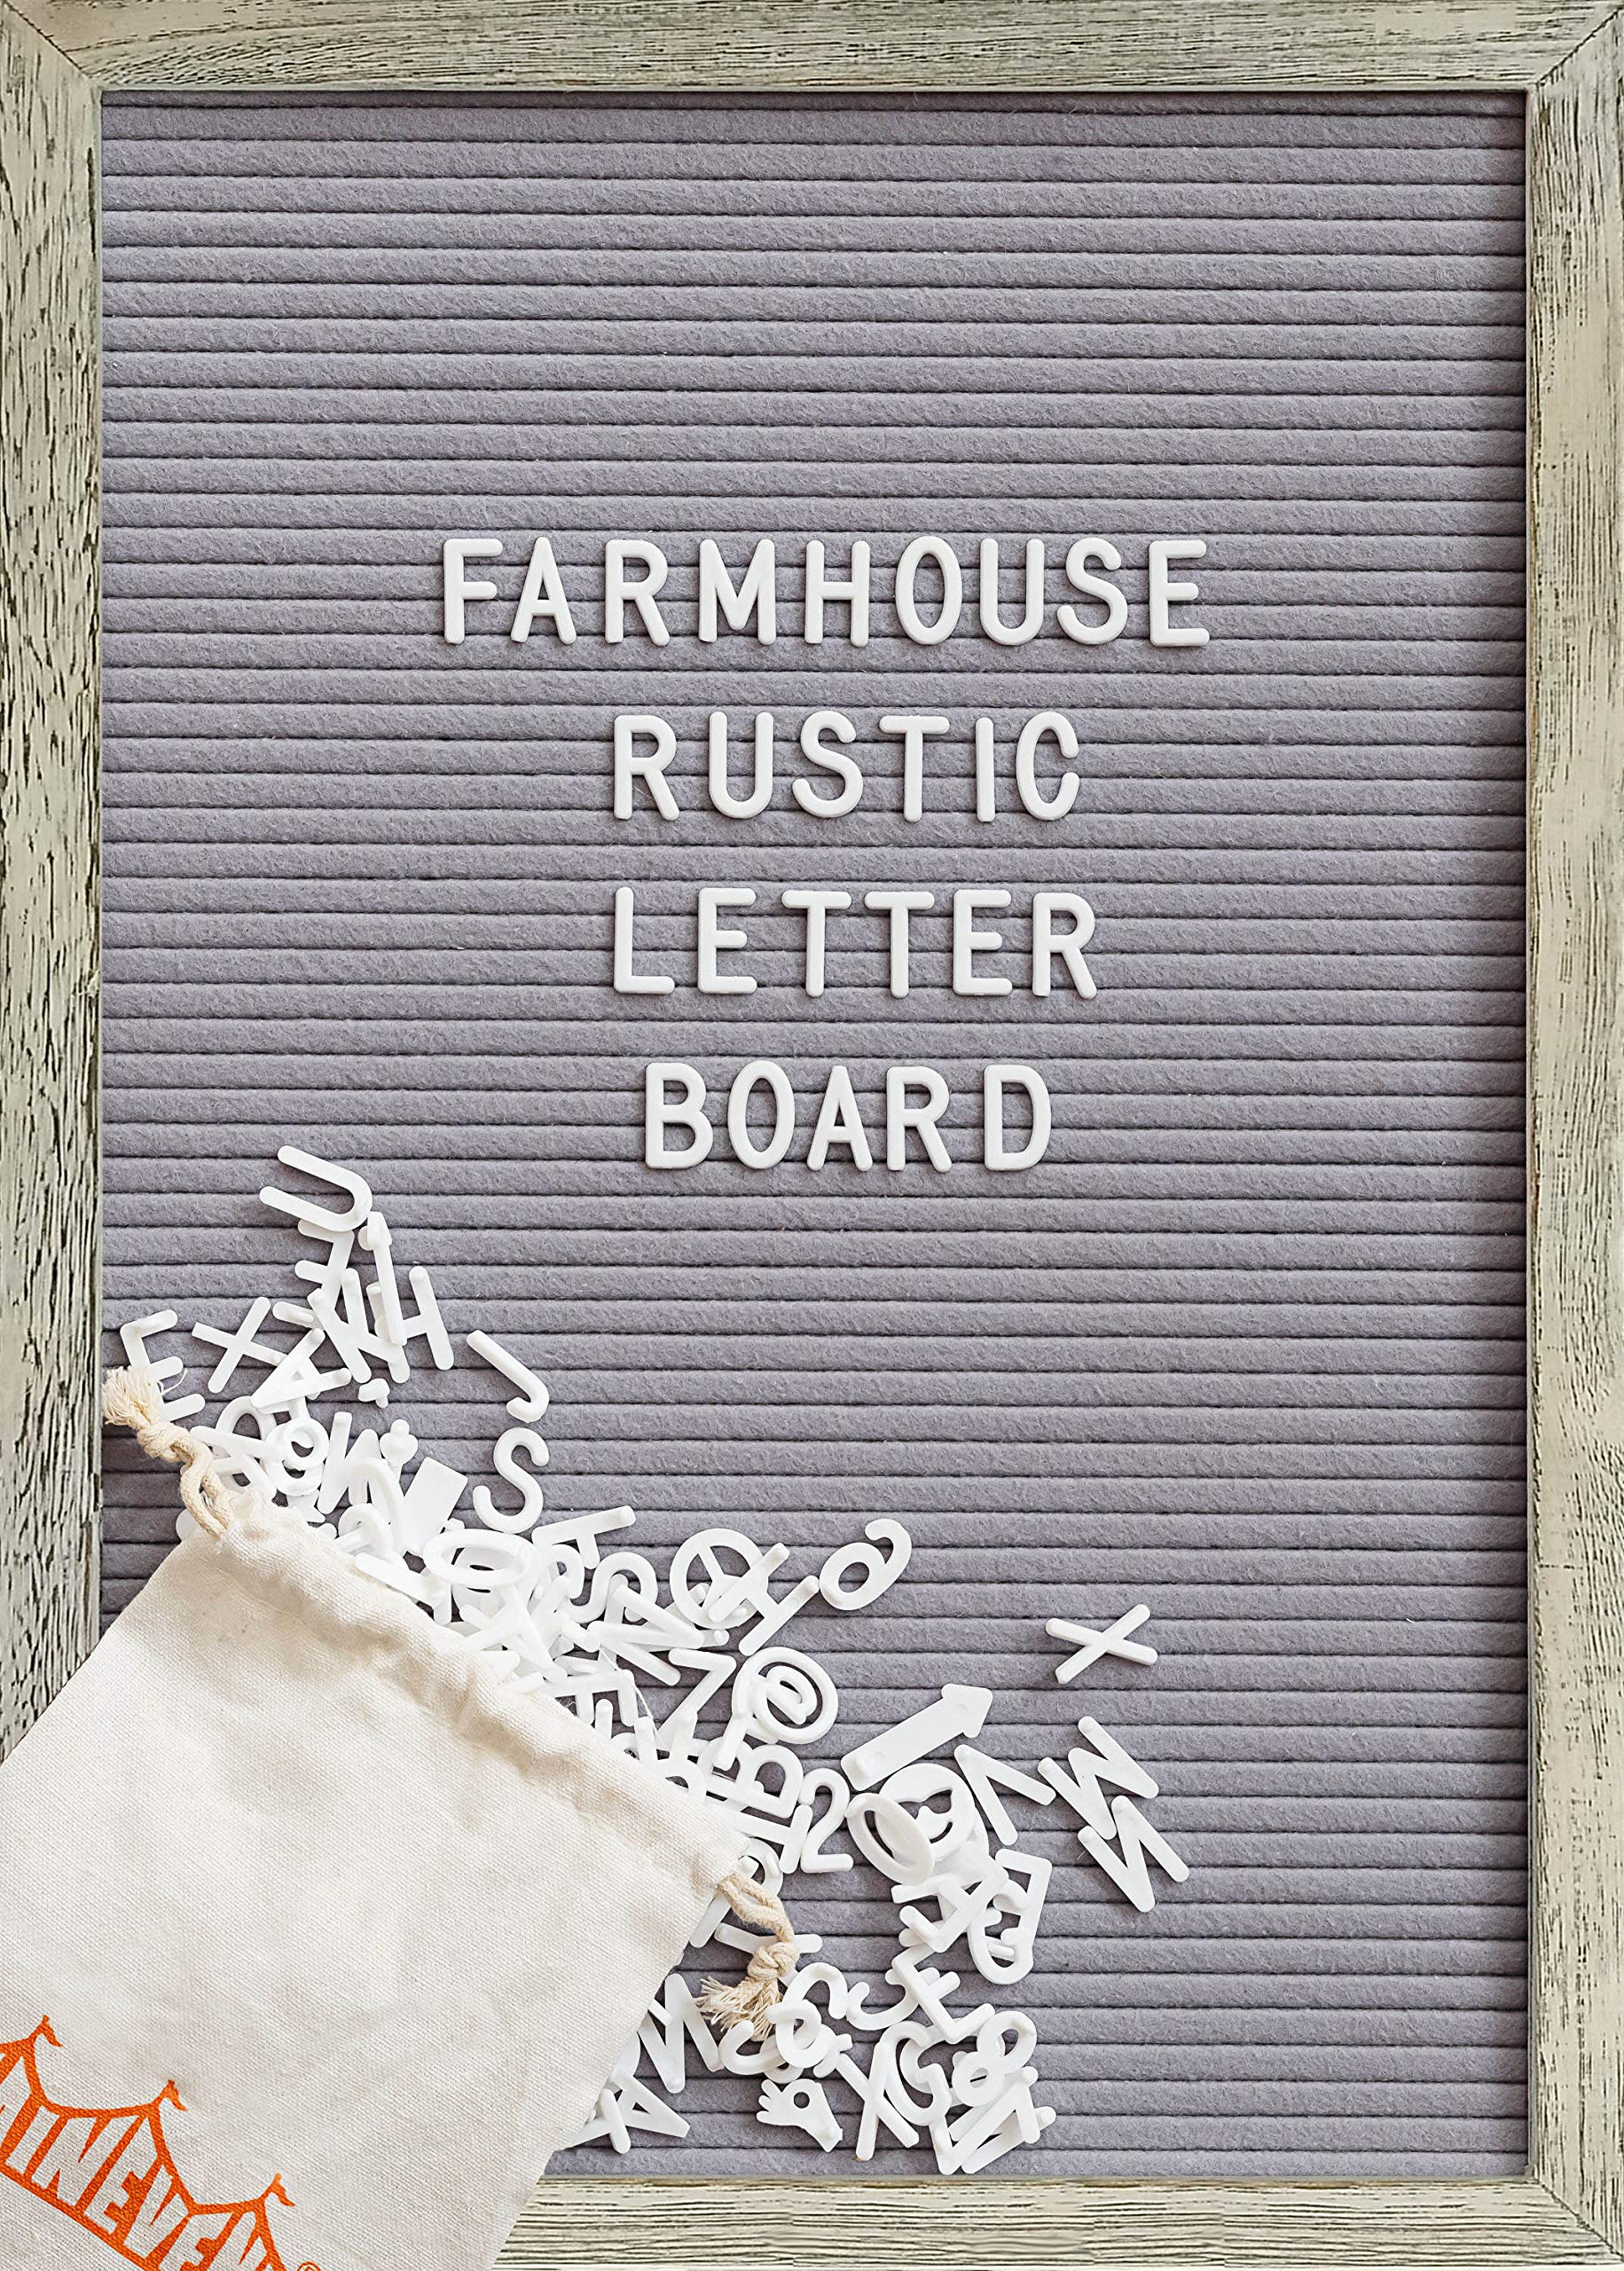 Felt Letter Board with 12x17 Inch Rustic Wood Frame, Script Words, Precut Letters, Picture Hangers | Farmhouse Wall Decor | Shabby Chic Vintage Decor | Grey Felt Message Board